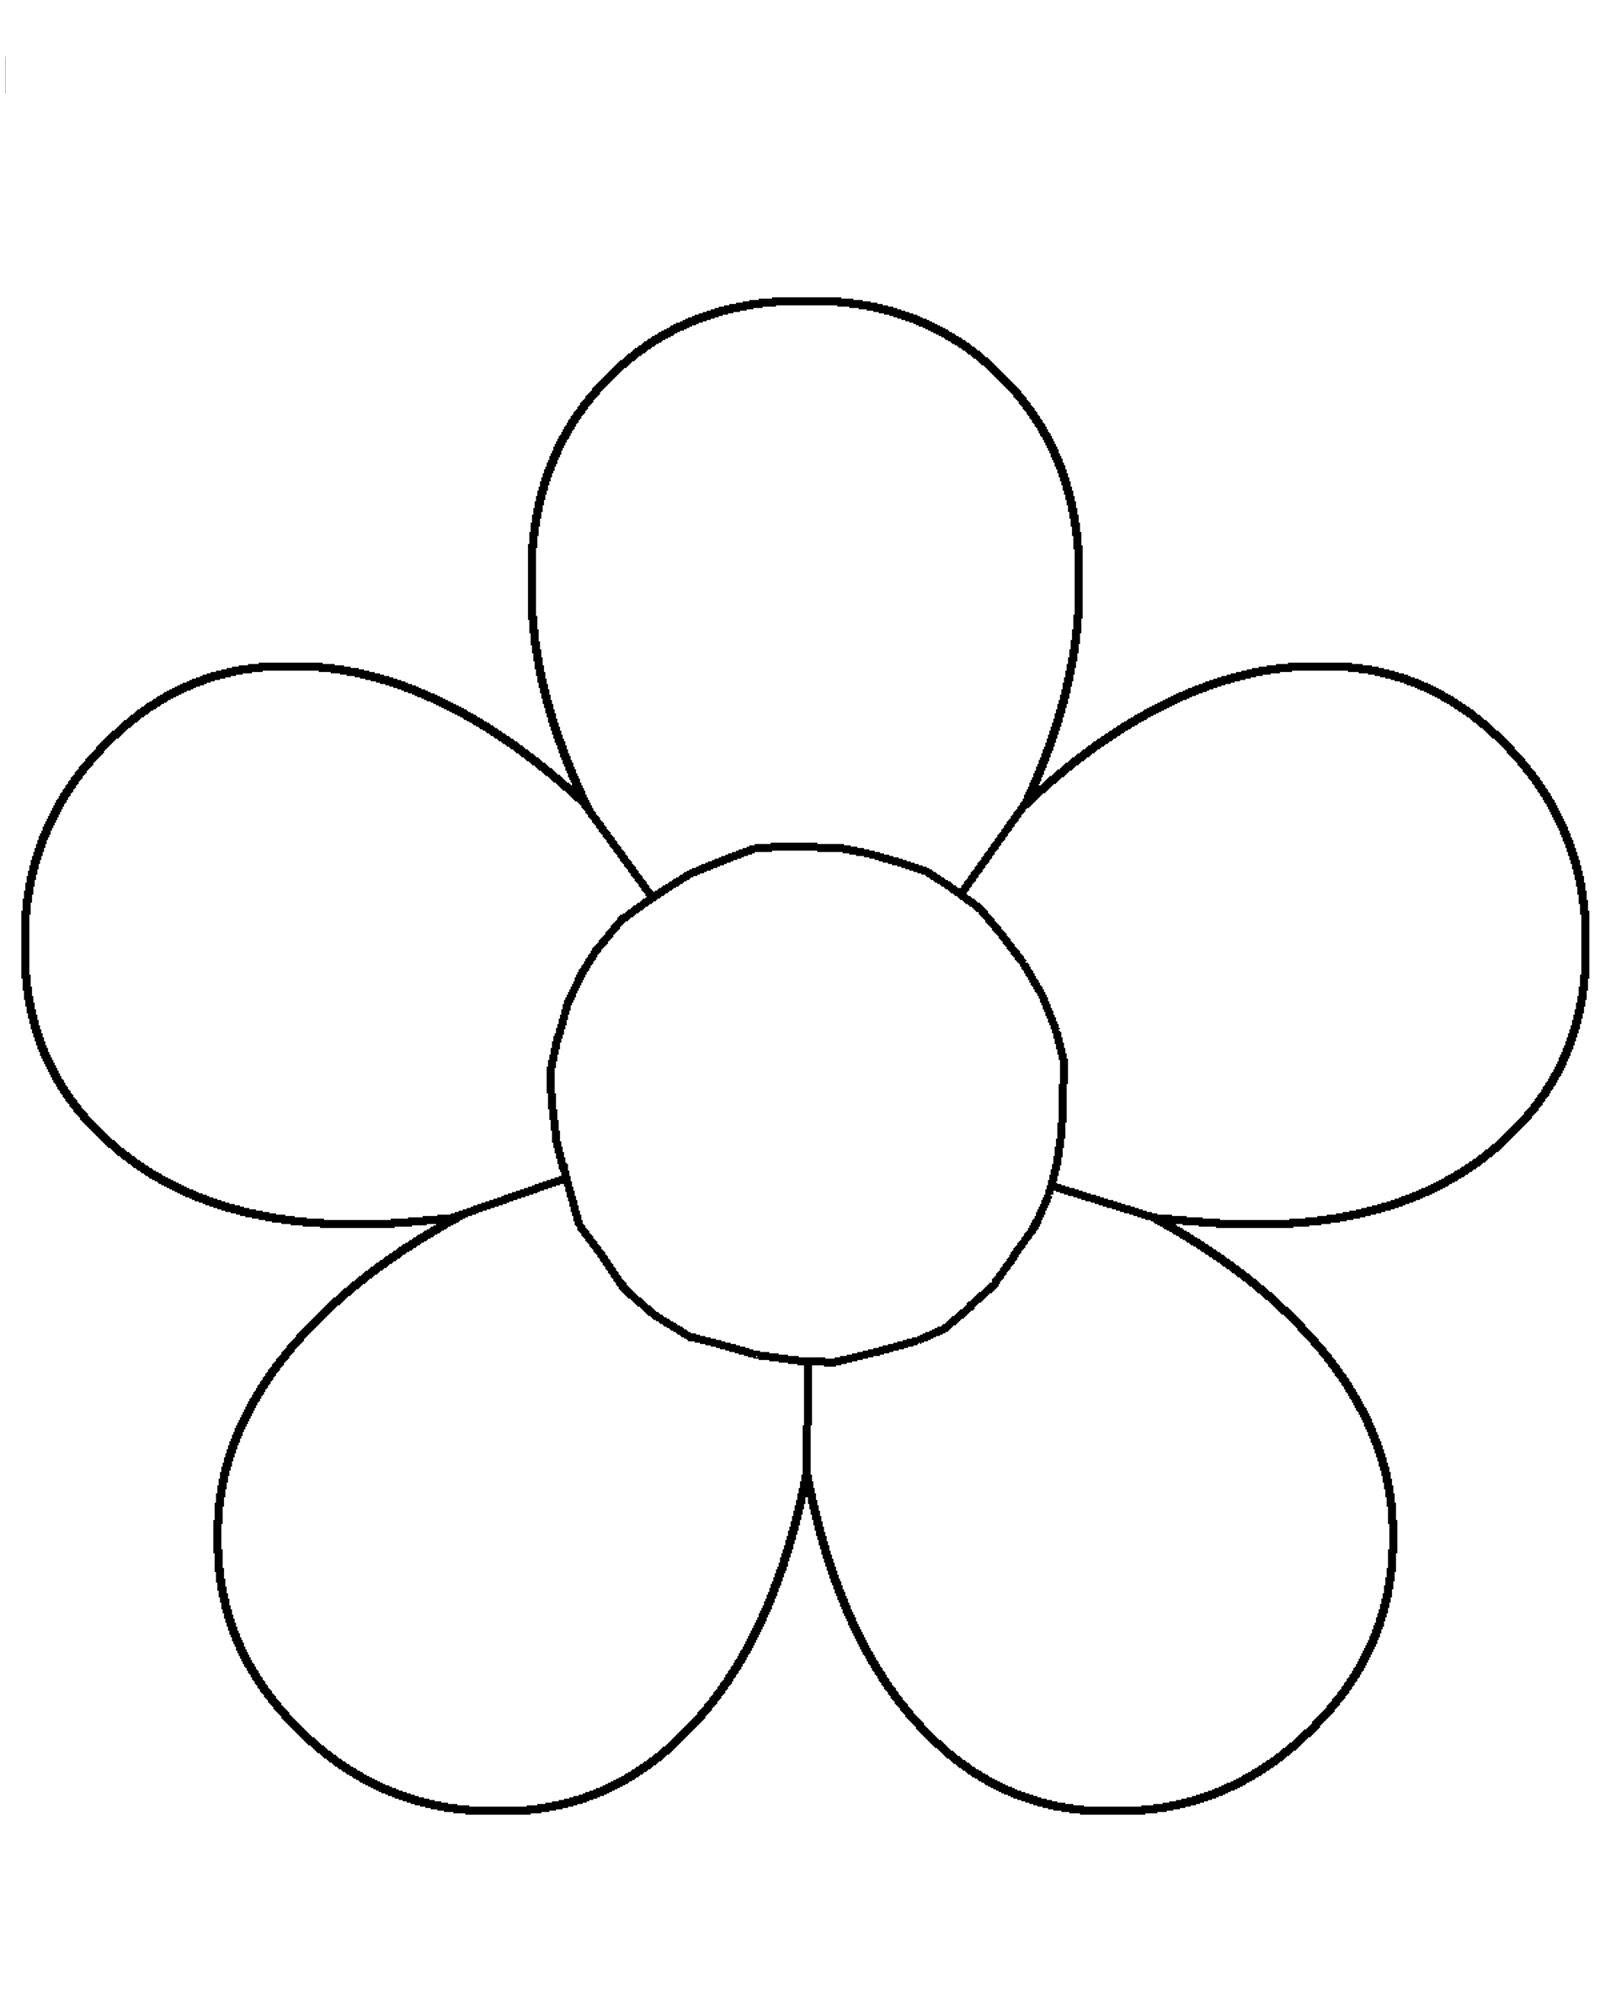 flower templates for coloring flower template for childrens activities flower flower templates for coloring